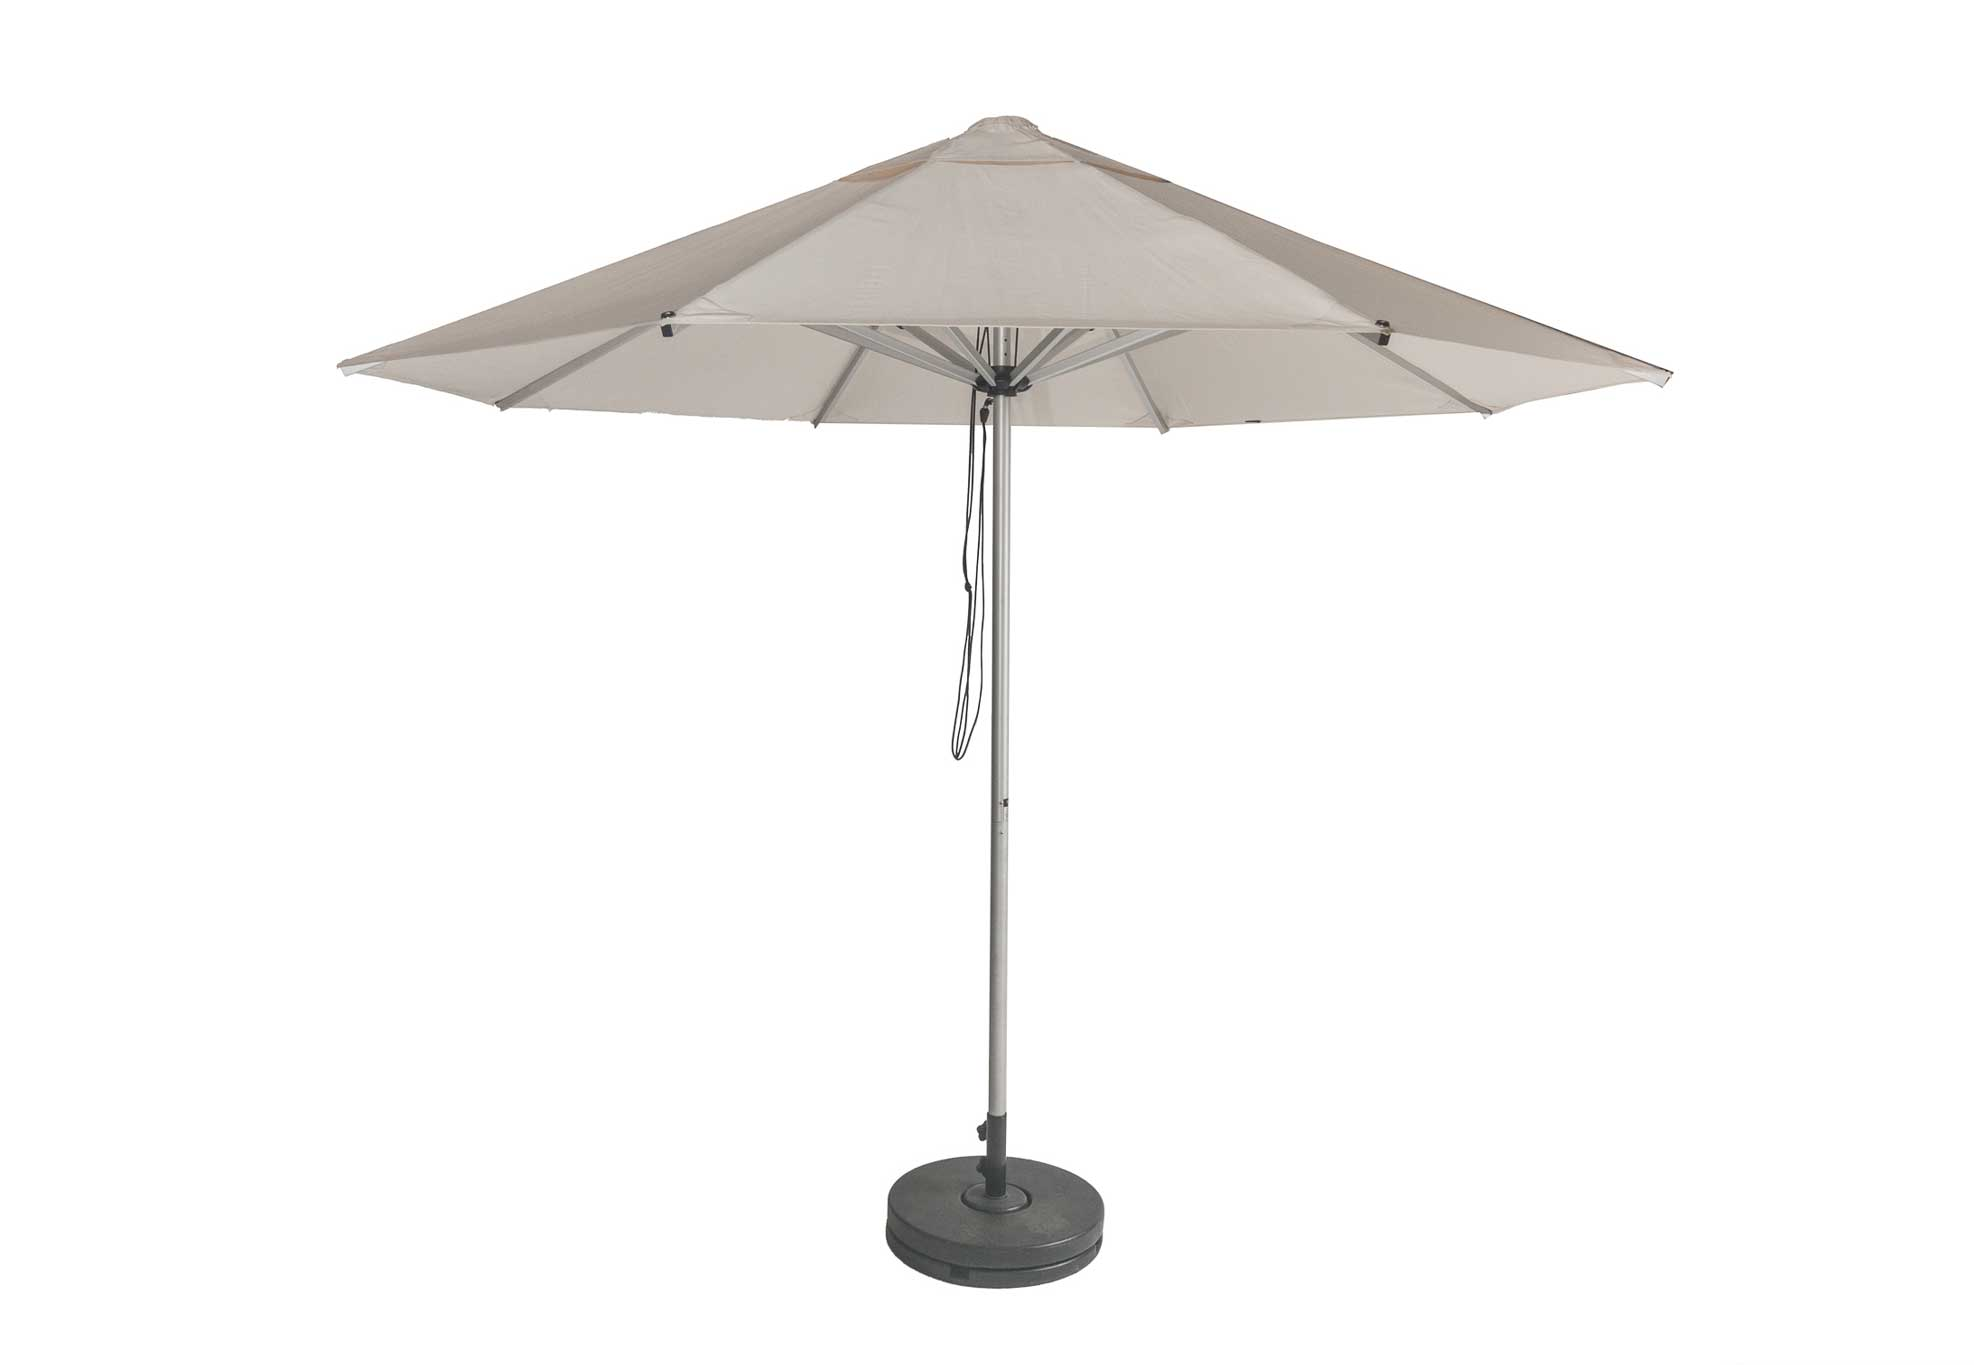 silk-estate-marquee-weddings-and-events-styling-and-hire-furniture-cream-umbrella